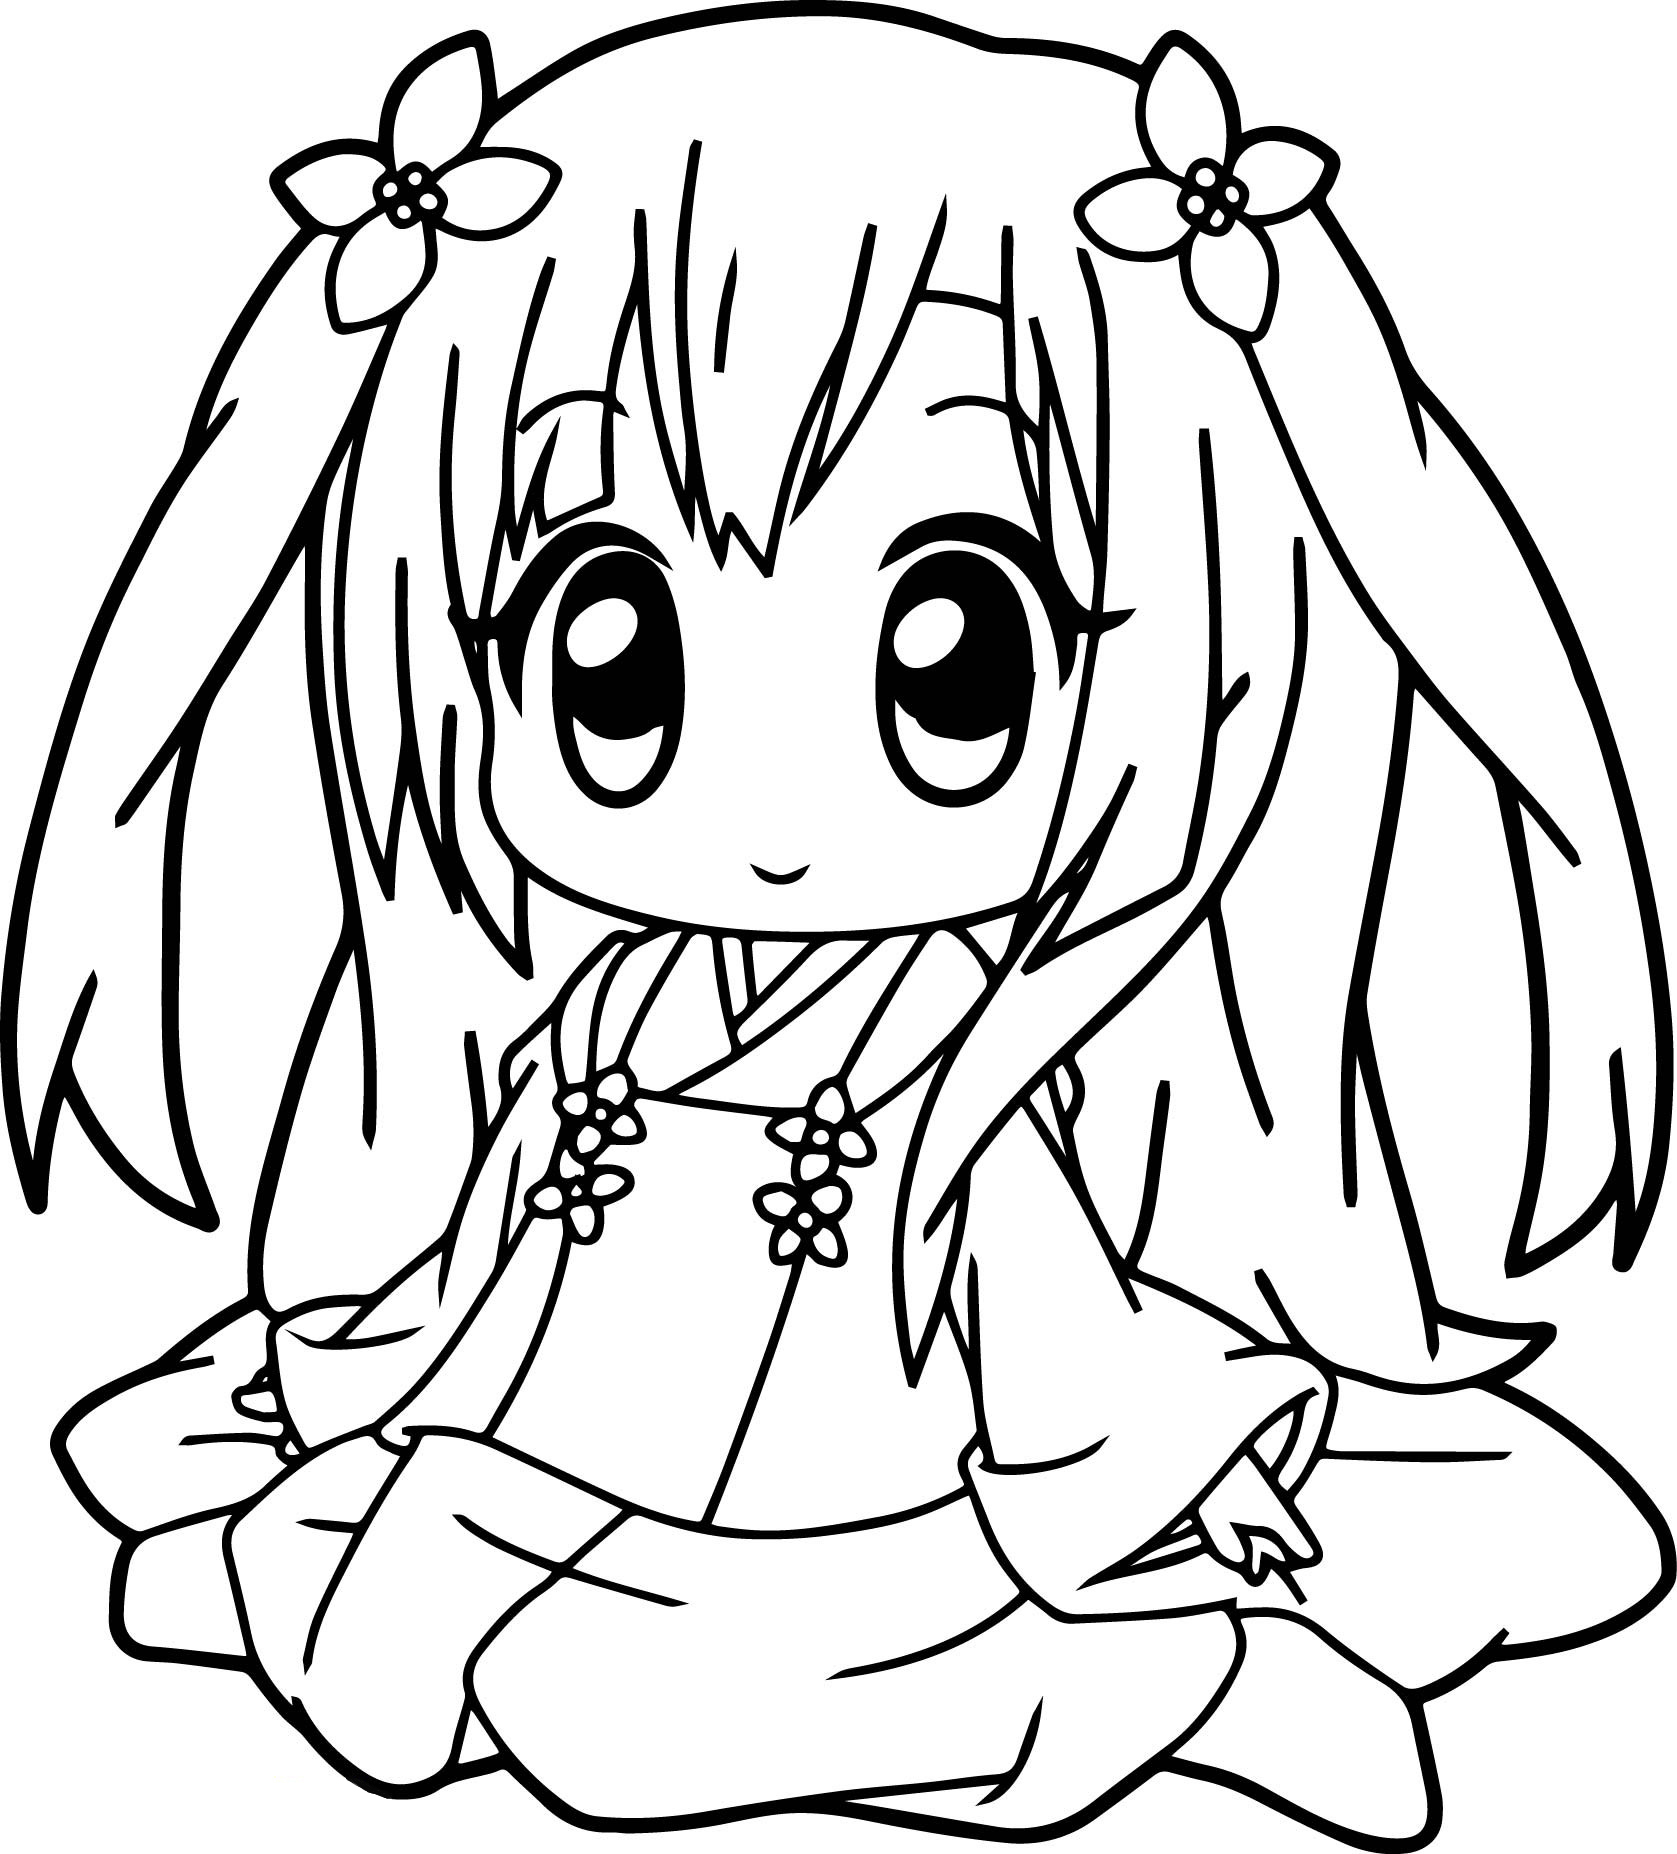 coloring pages of cute things cute coloring pages best coloring pages for kids things pages coloring of cute